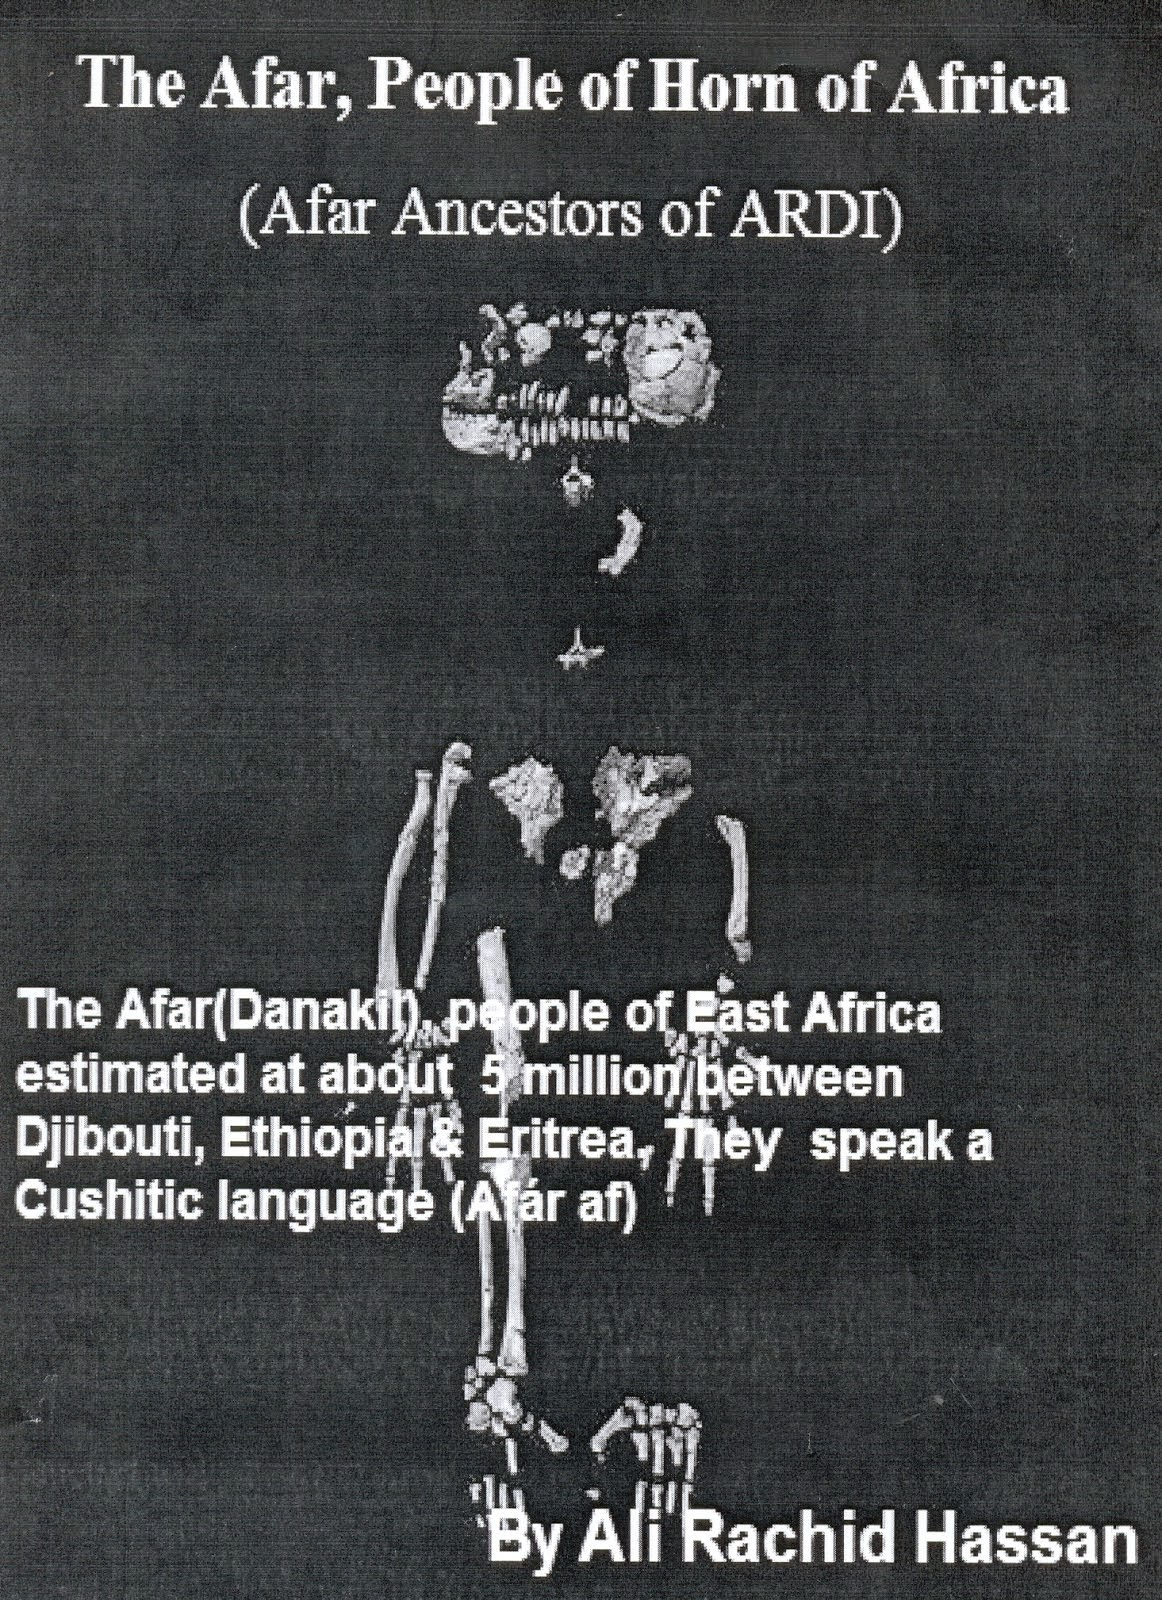 The Afar, People of Horn of Africa  (Afar Ancestors of ARDI)